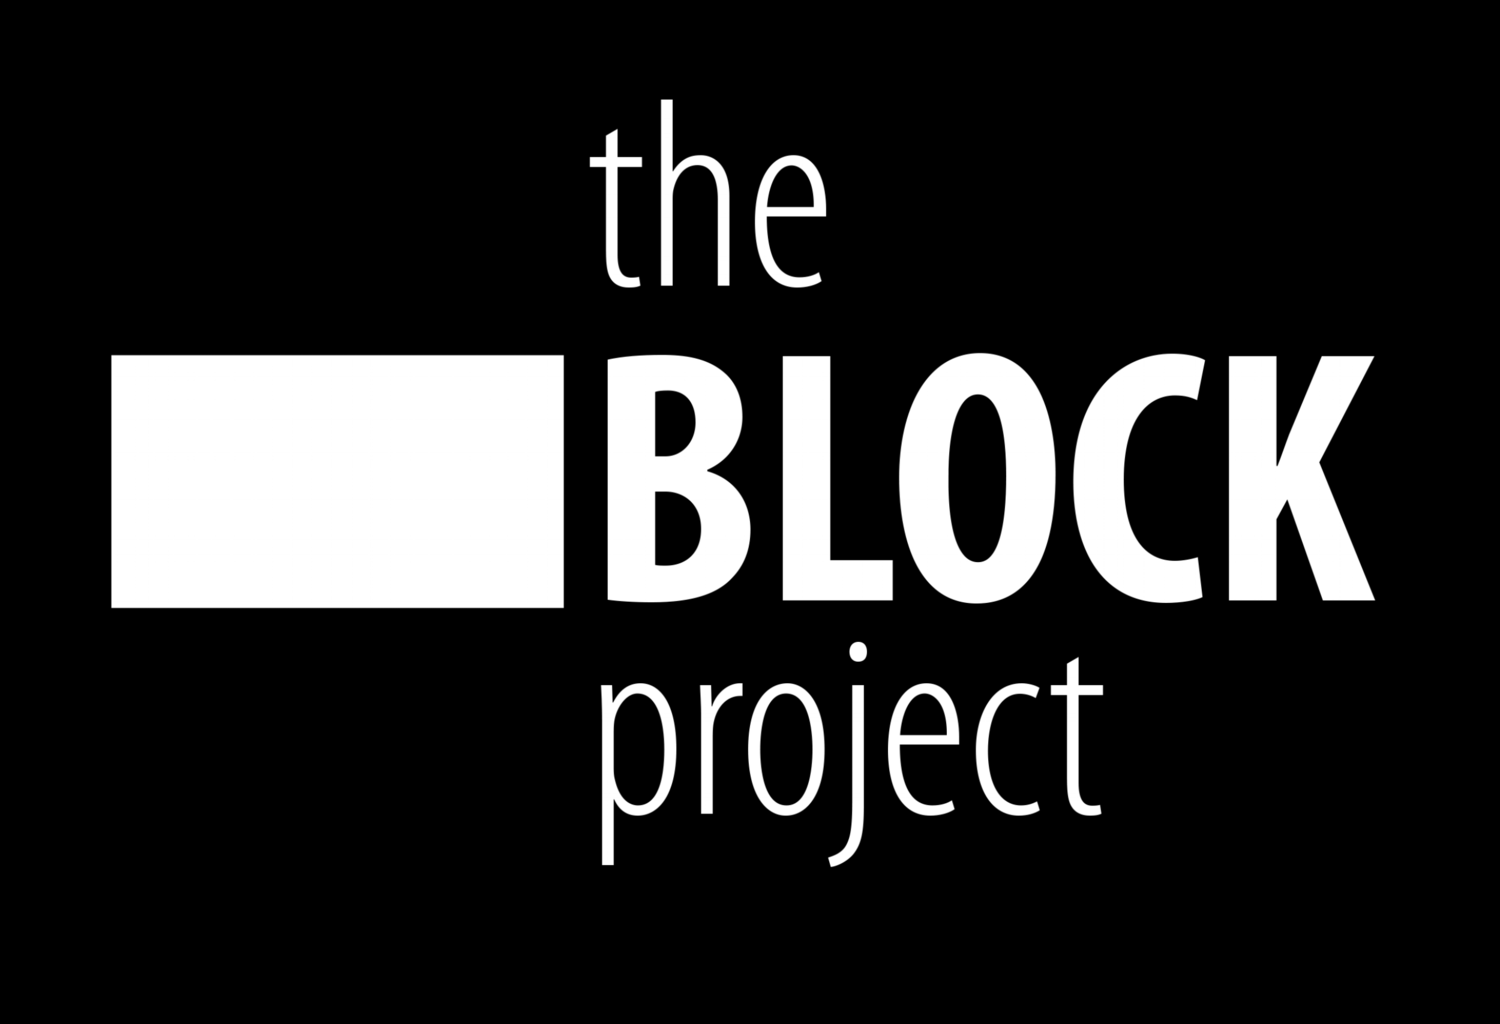 the BLOCK project